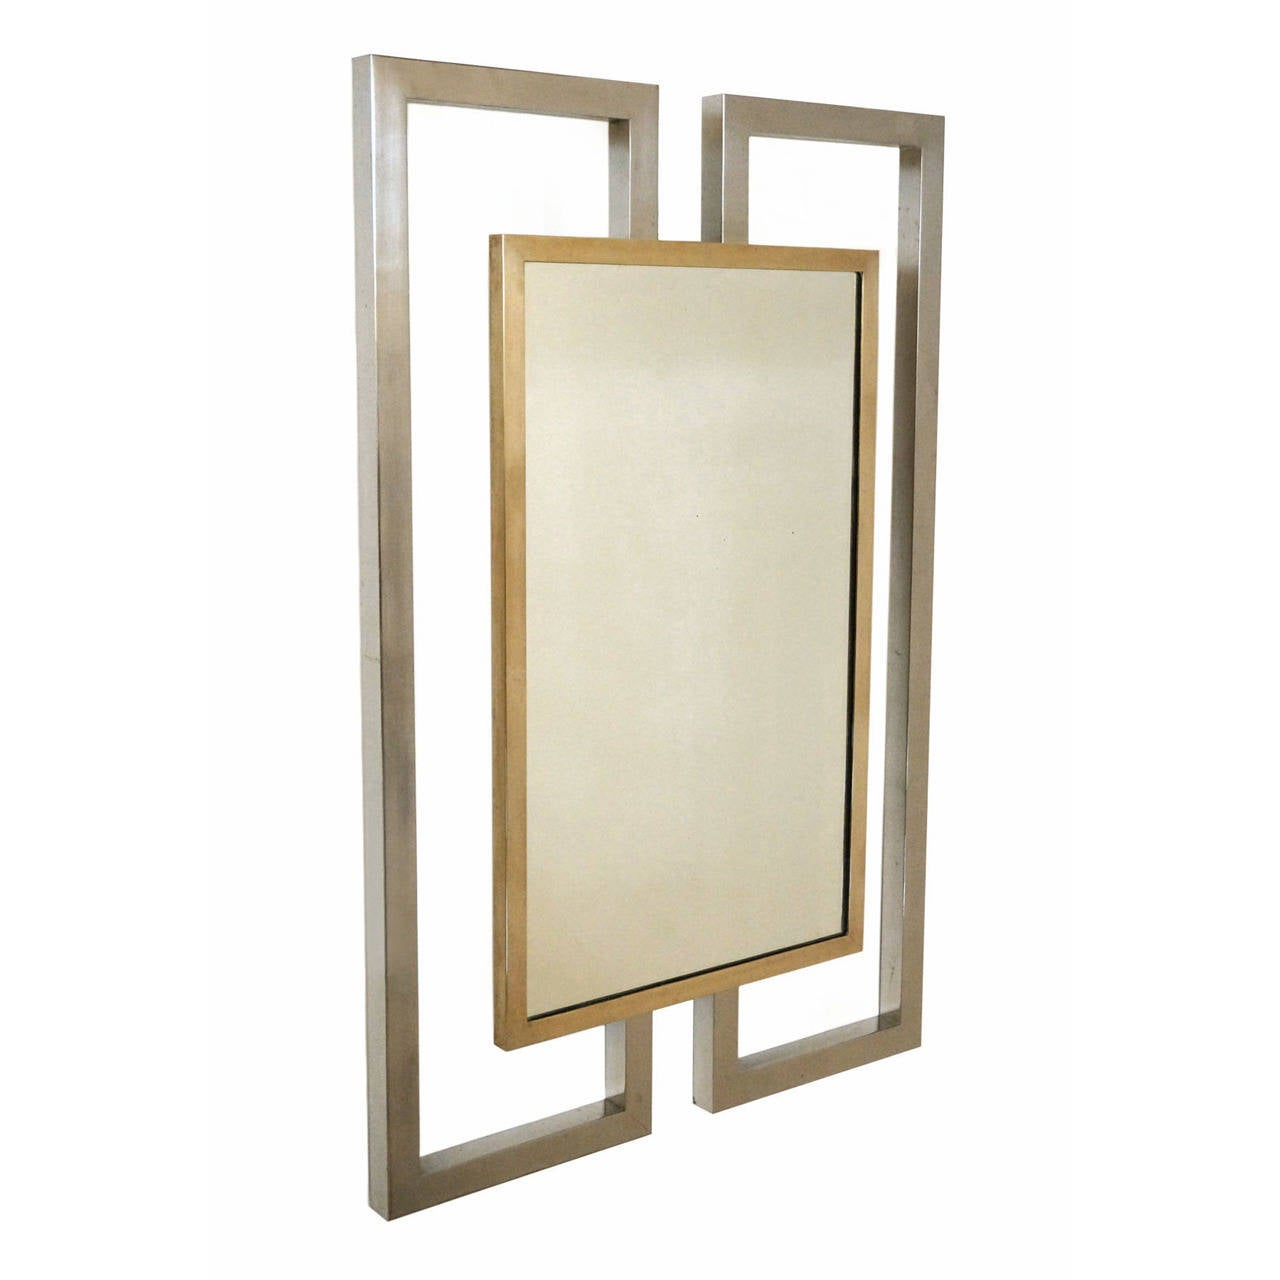 Geometric Wall Mirror mid-century modern brass and chrome geometric wall mirror, france